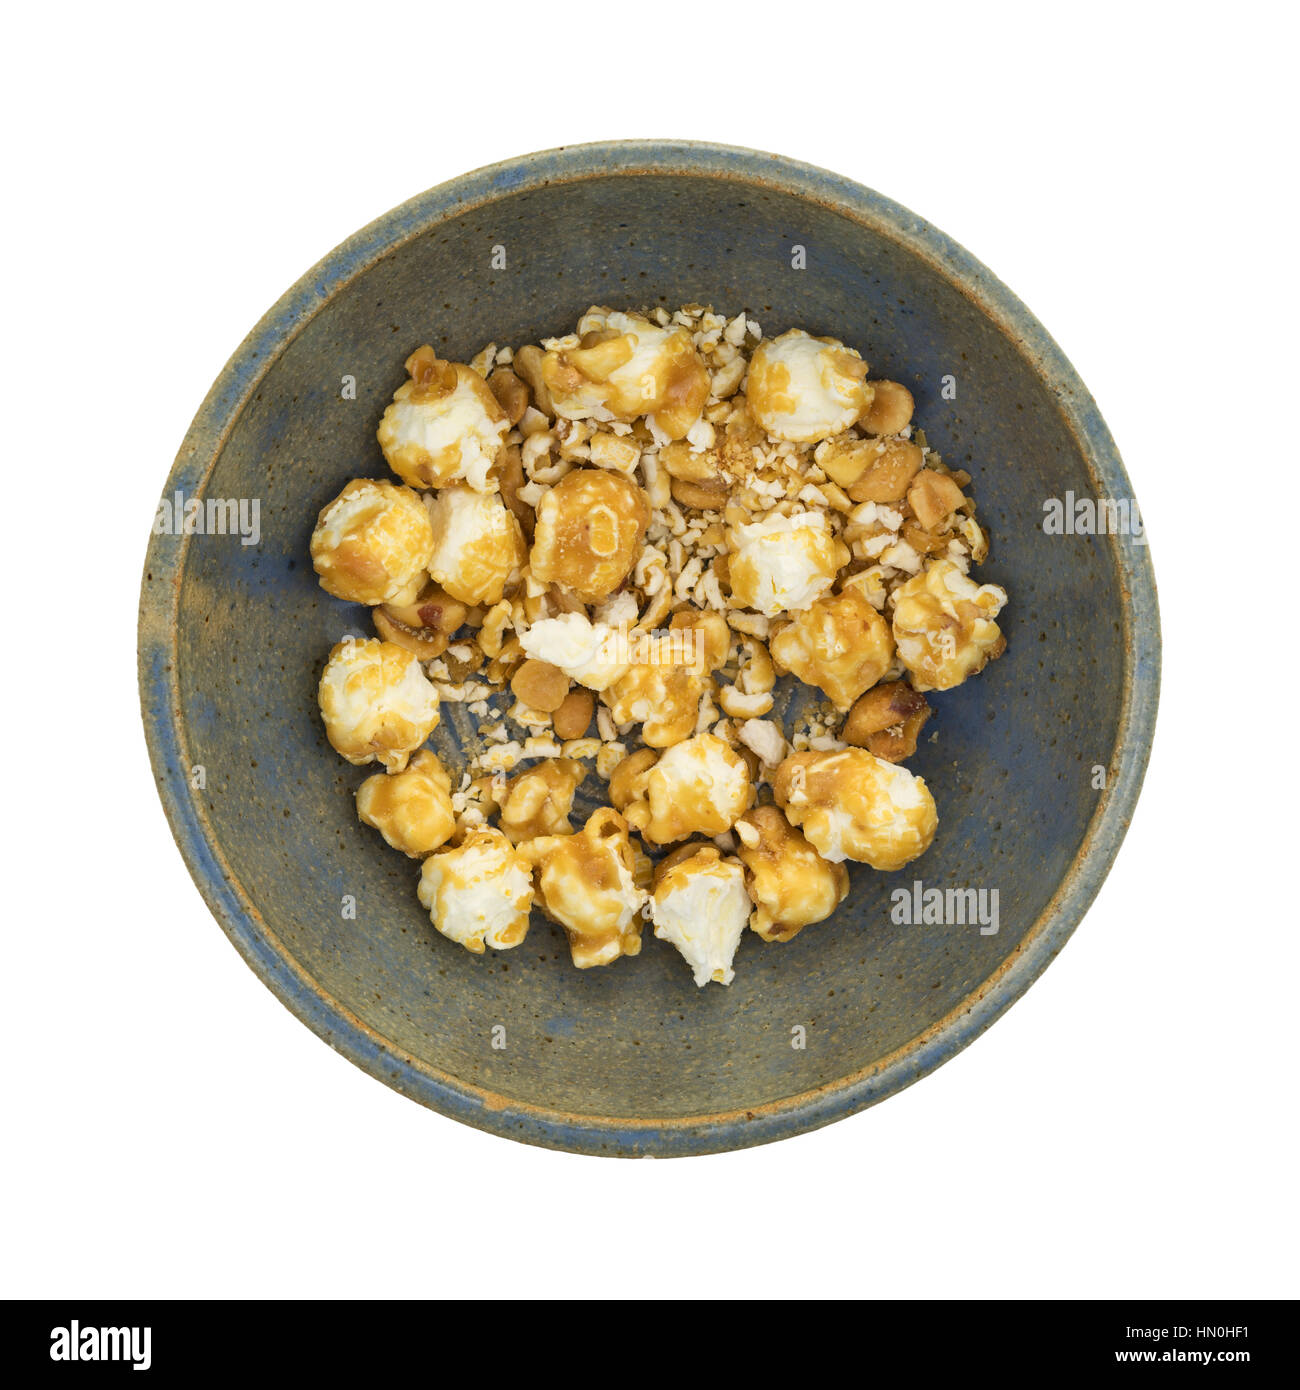 An old stoneware bowl with toffee caramel popcorn crumbs with nuts isolated on a white background. - Stock Image